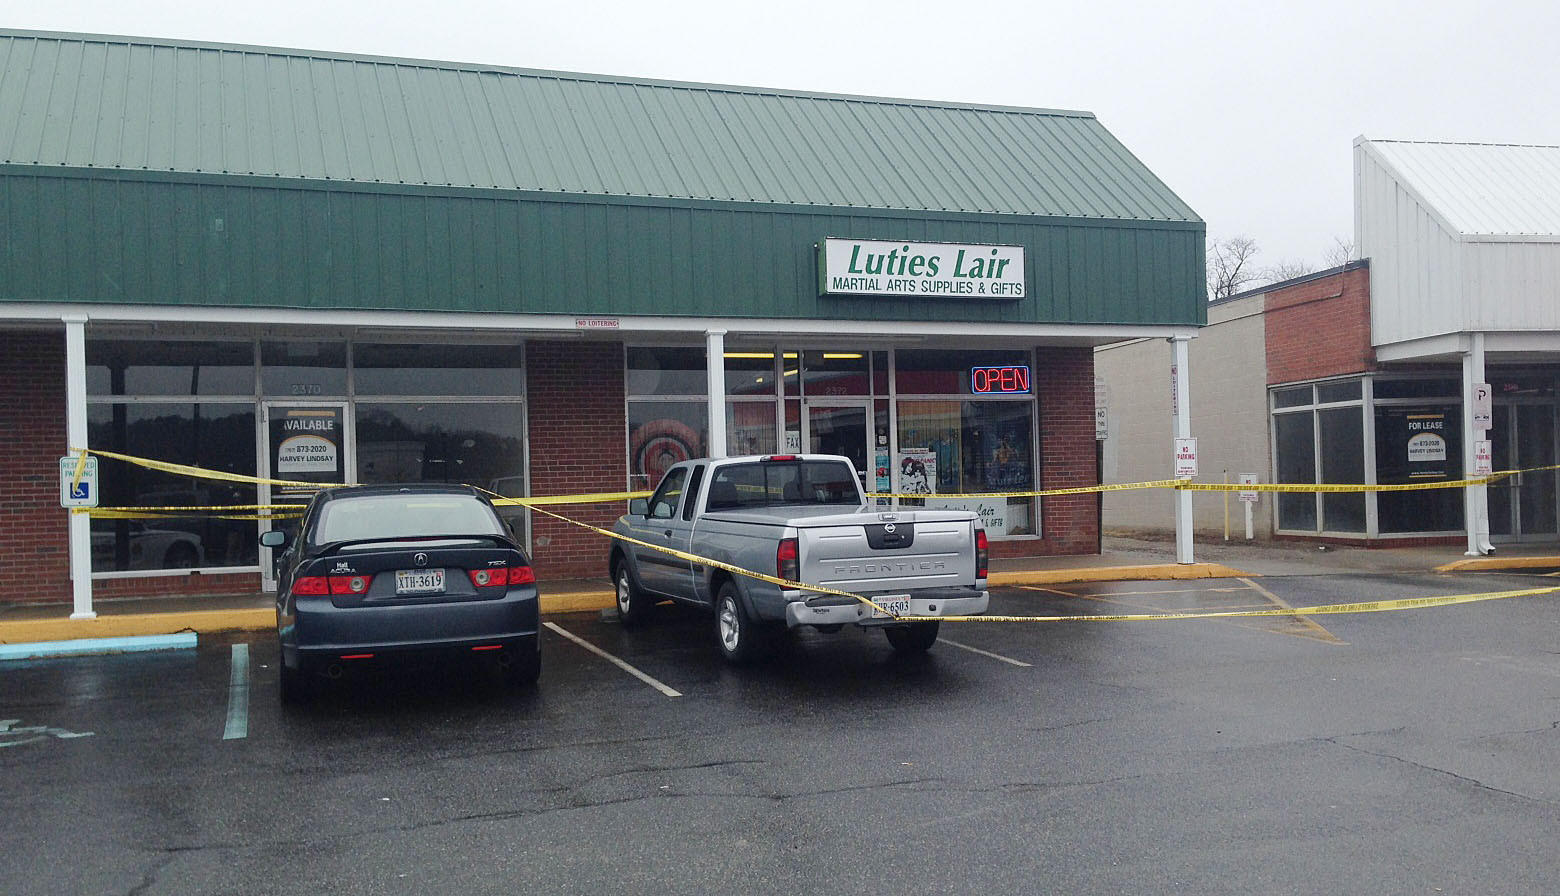 Lutie's Lair, a smoke shop in a Hayes strip mall shown here on Thursday, February 13, 2014, was one of two business in Gloucester raided by a multi-jurisdiction law enforcement task force investigating the sales of illicit synthetic drugs such as spice.